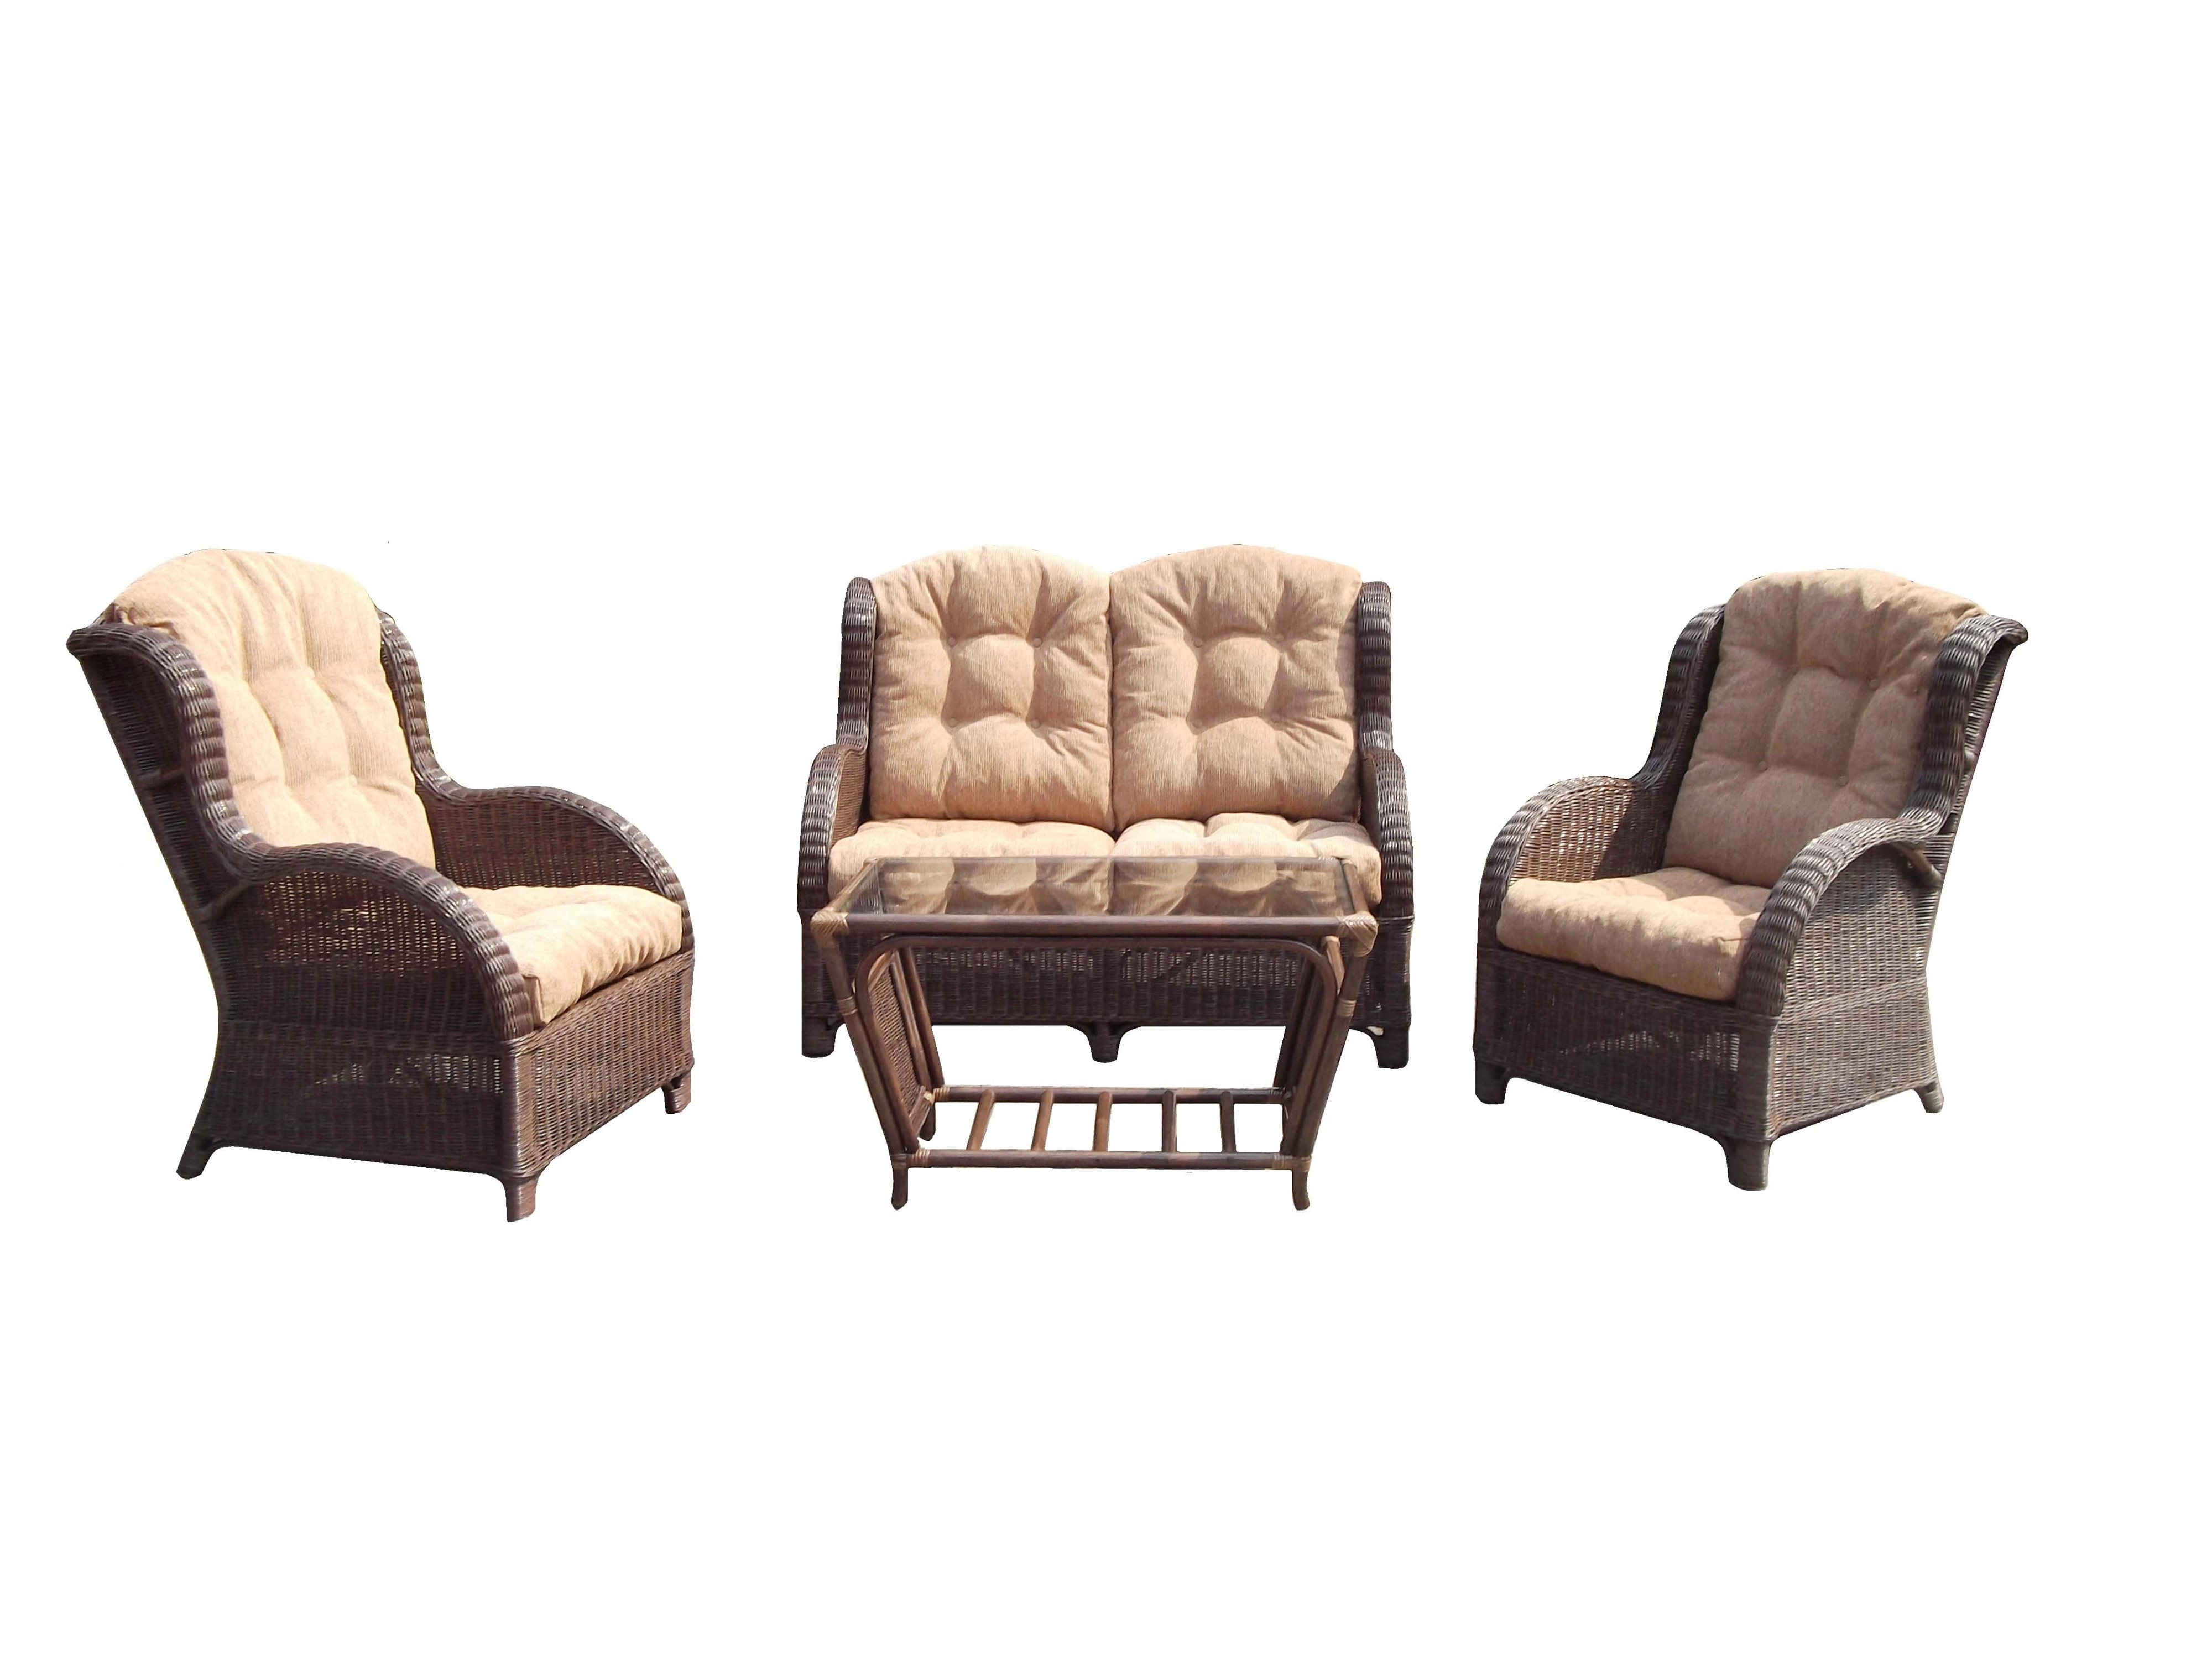 Rattan Chair Cushions For Your Small Space Living Room